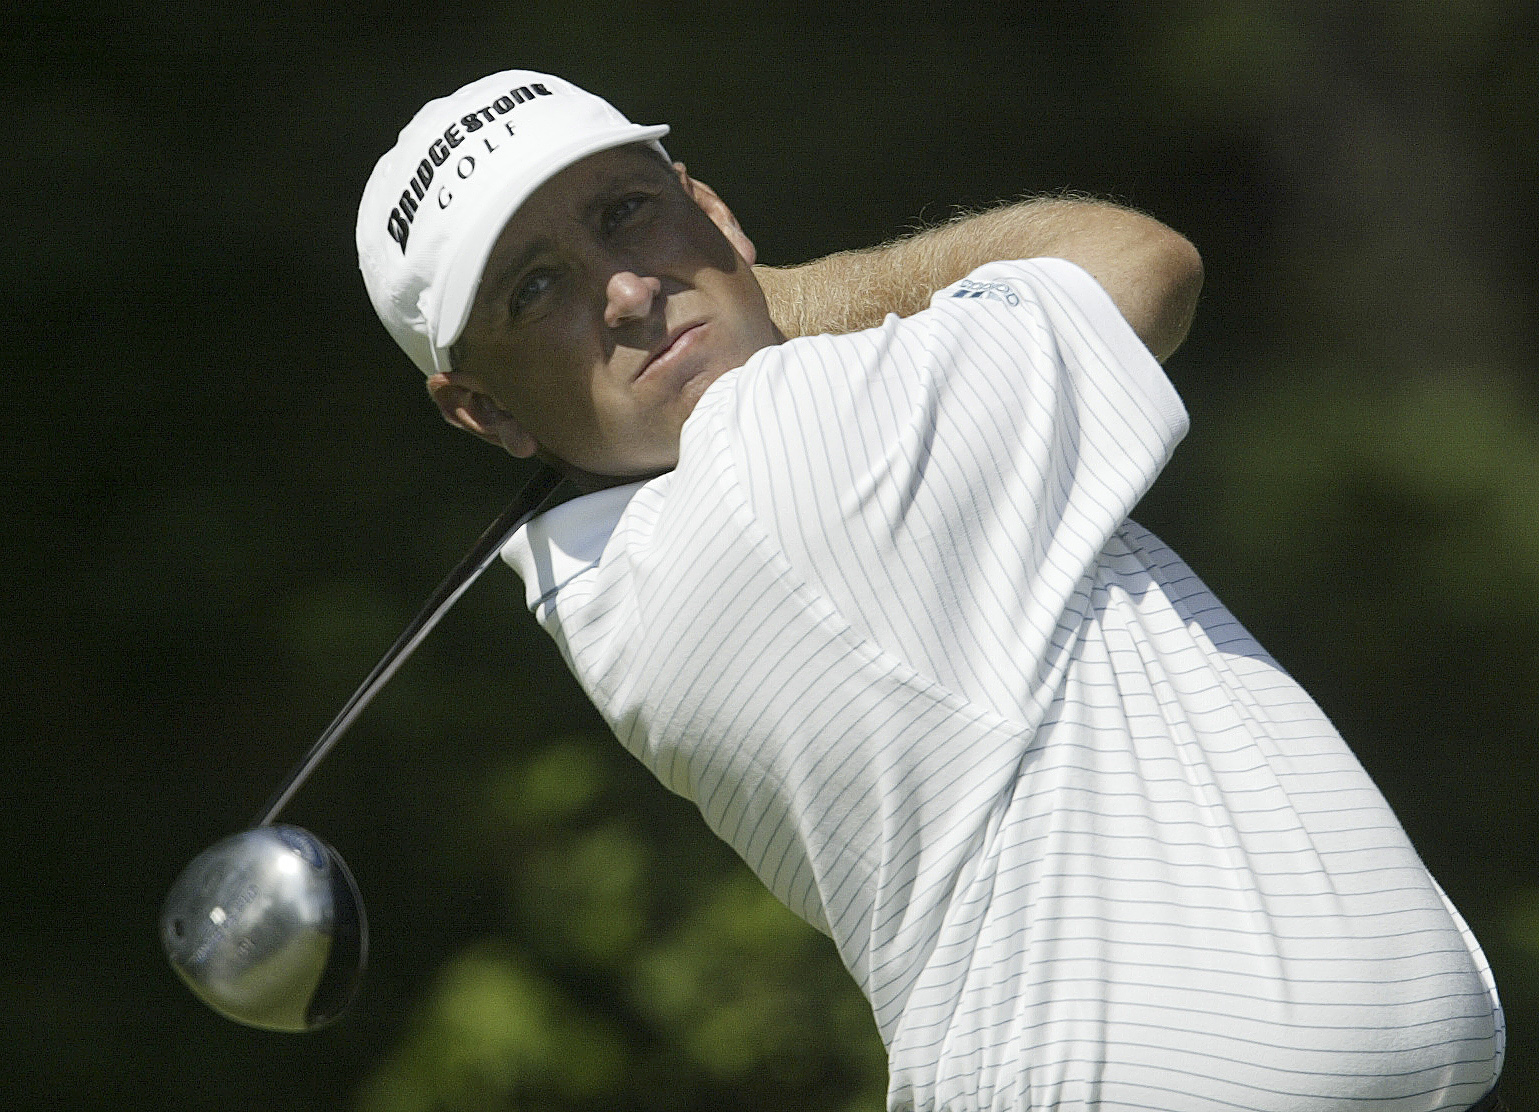 Scott Parel, from Augusta, Ga., tees off on the fourth hole during first round play in the 105th US Open Championship at the Pinehurst Resort and Country Club's No. 2 course in Pinehurst, N.C. Thursday, June 16, 2005. (AP Photo/Chuck Burton)